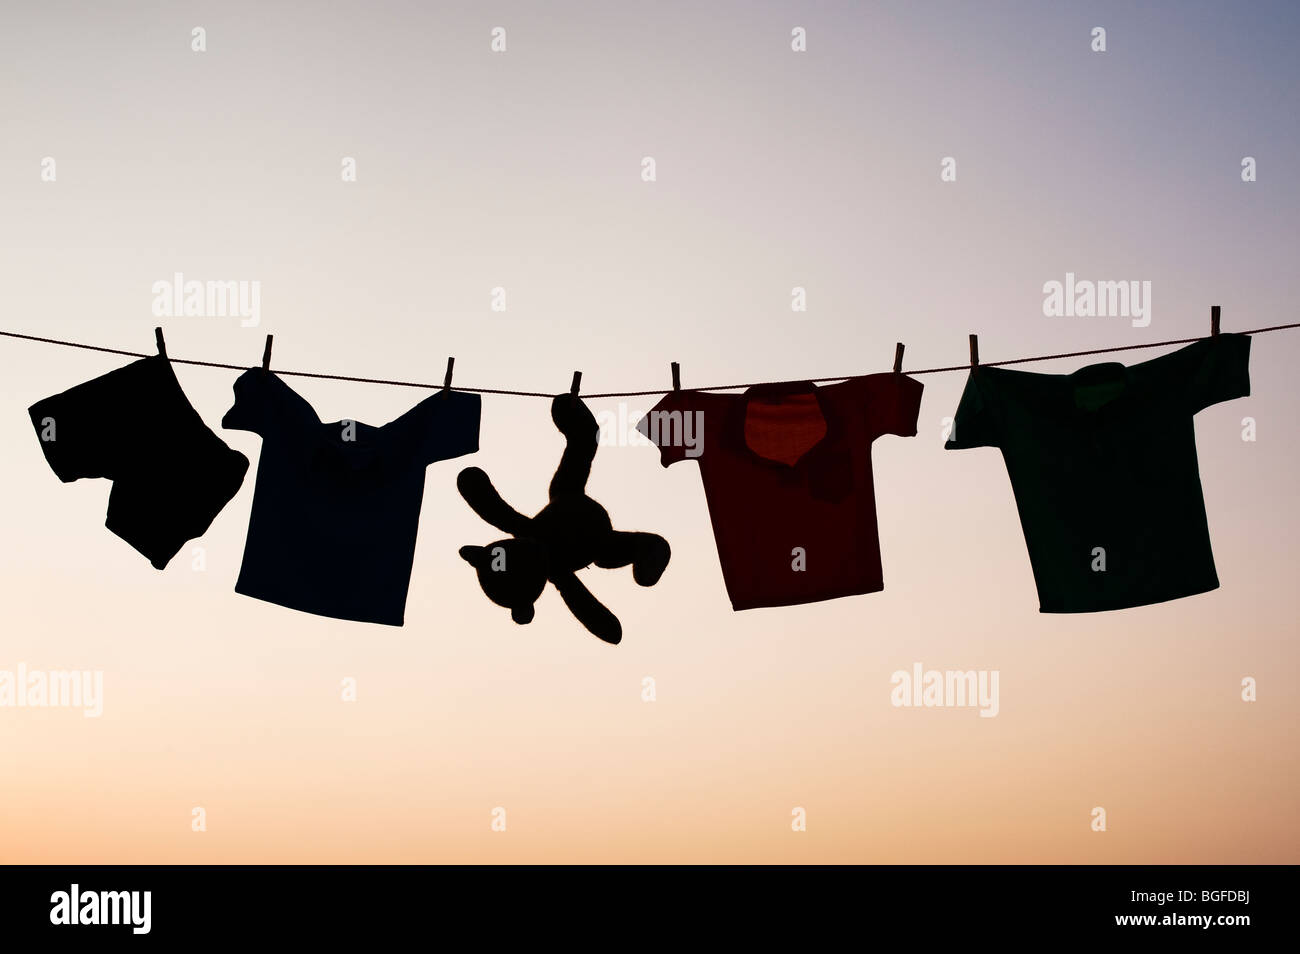 Childrens clothes and teddy bear on a washing line silhouette at dusk. India - Stock Image